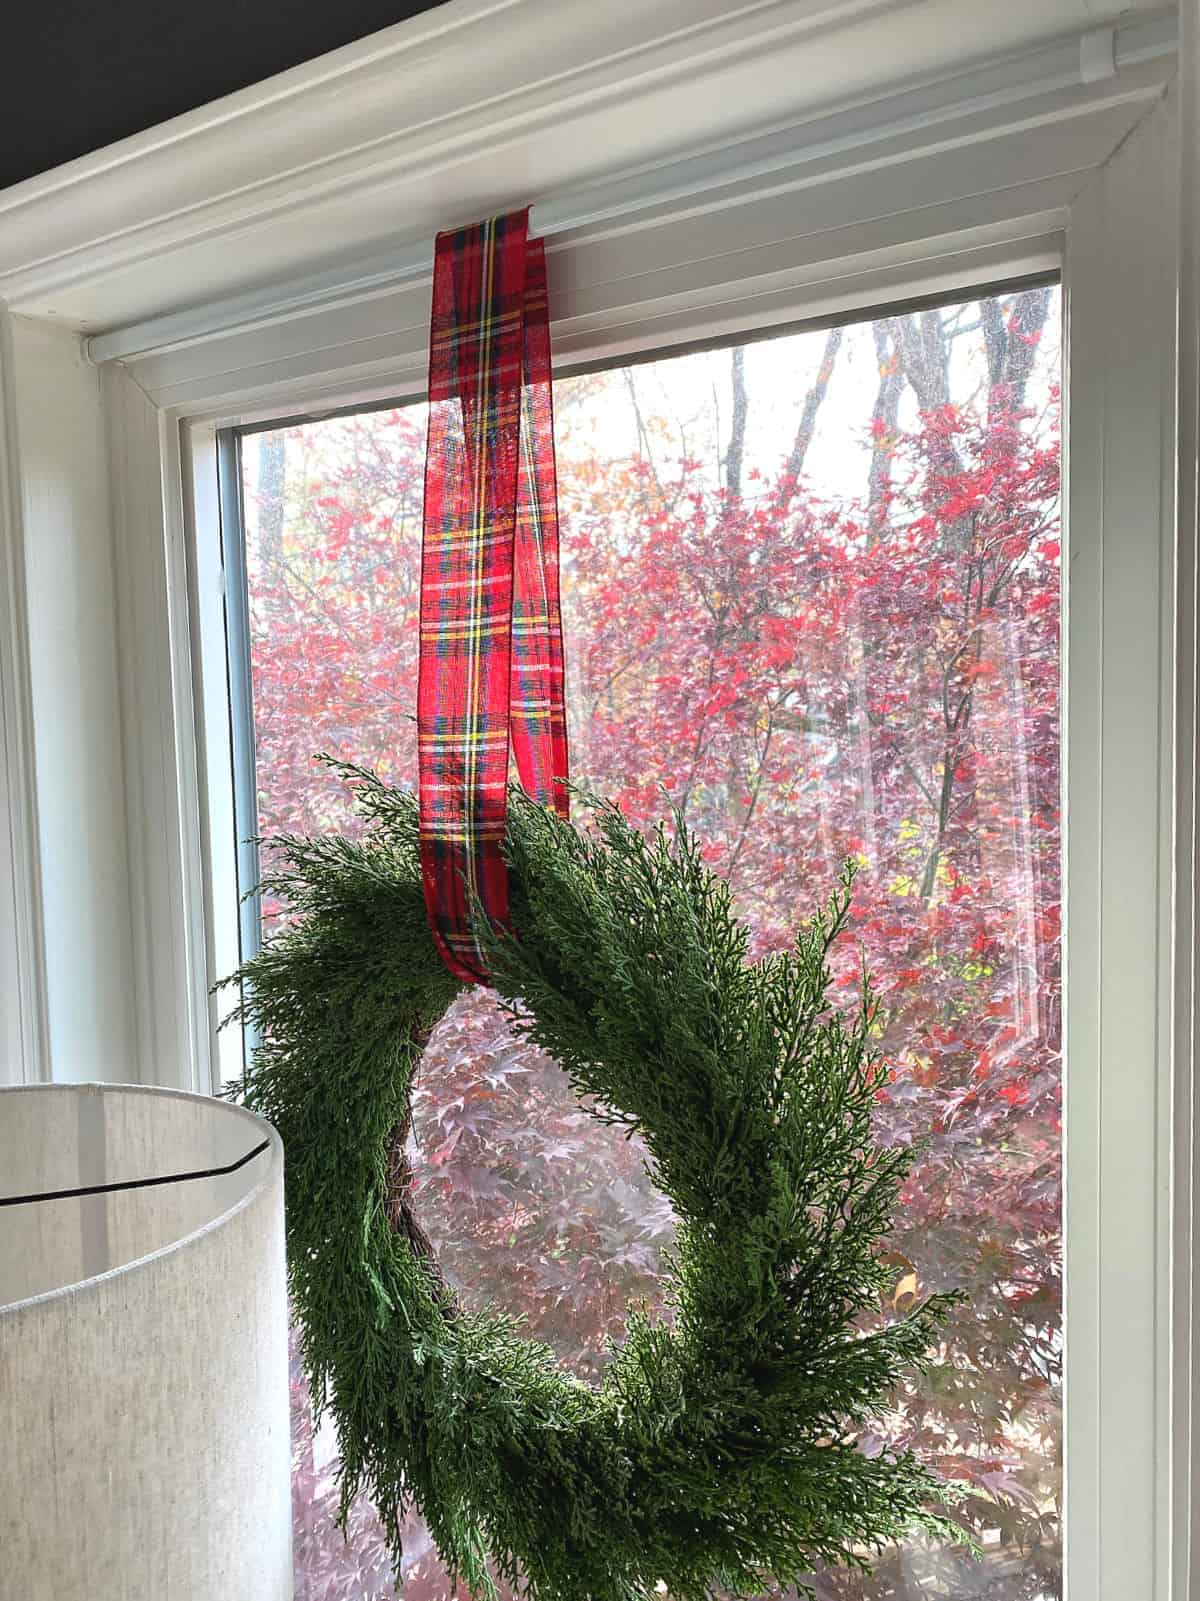 wreath hanging in window with red checked ribbon